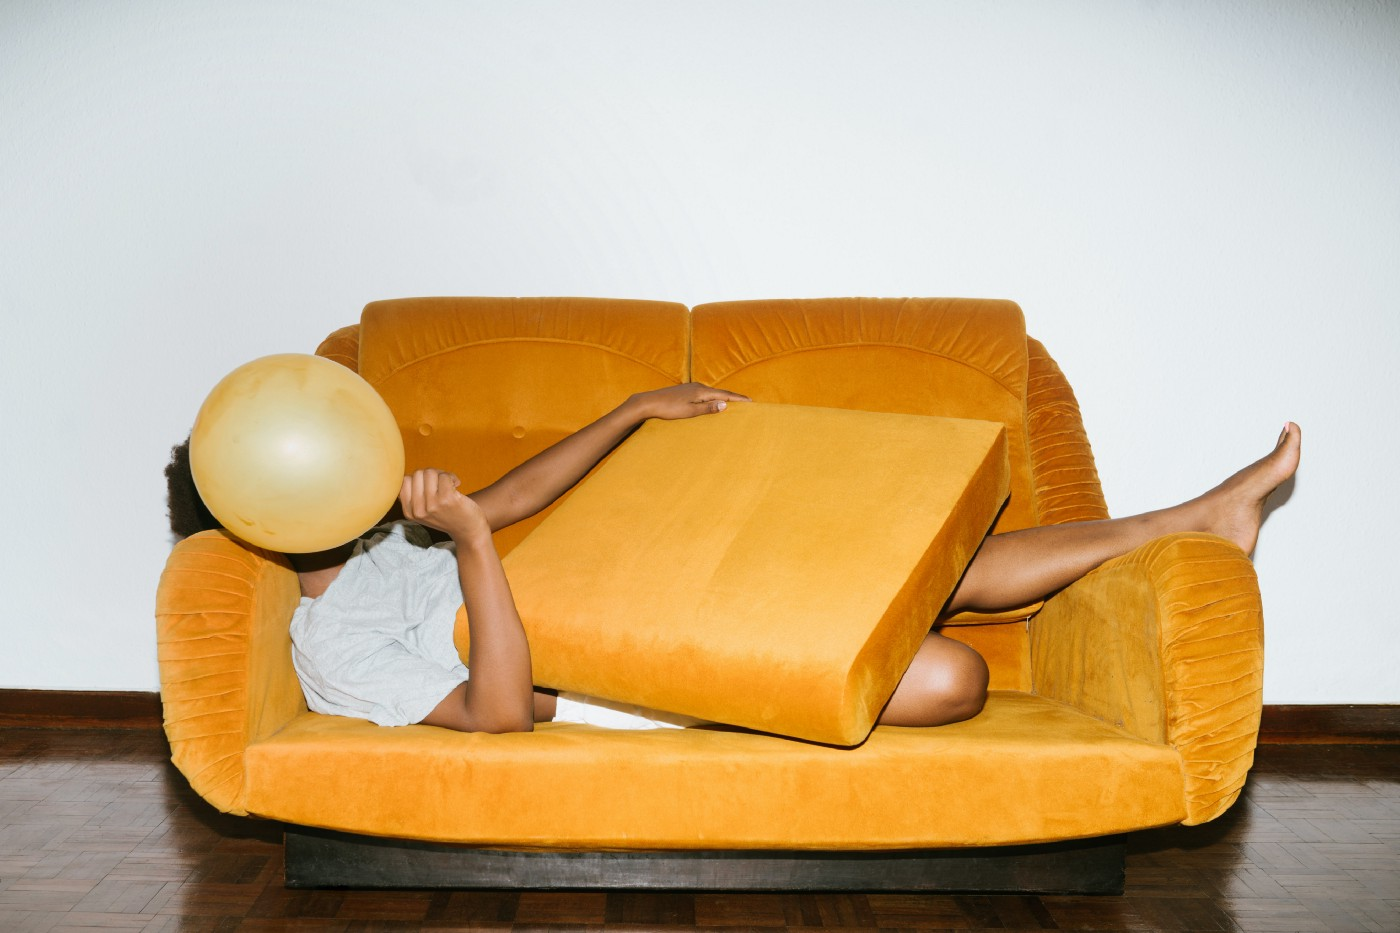 human is hiding behind a pillow and a ballon